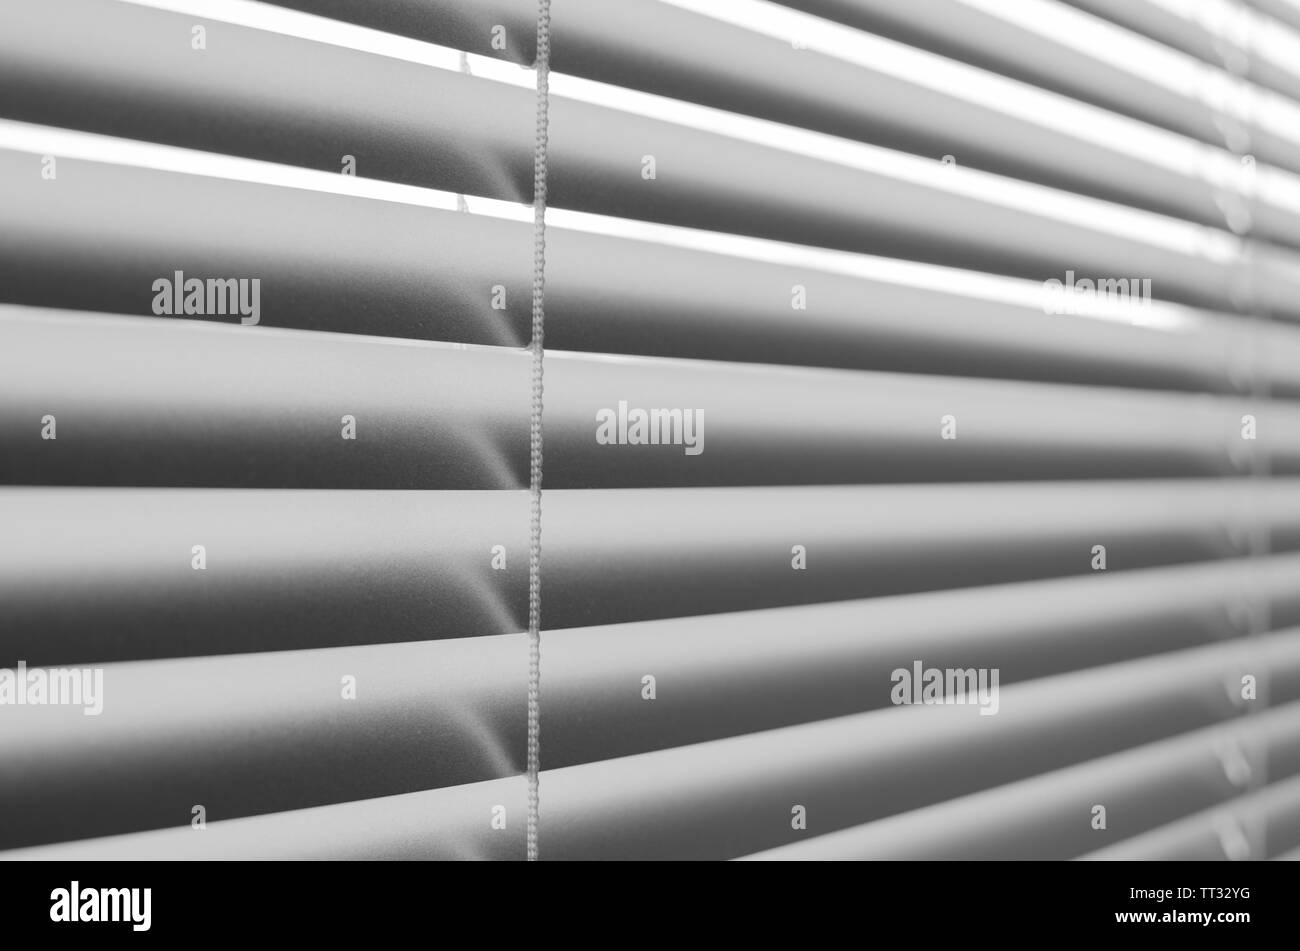 Abstract grey background of horizontal lines, blinds - Stock Image